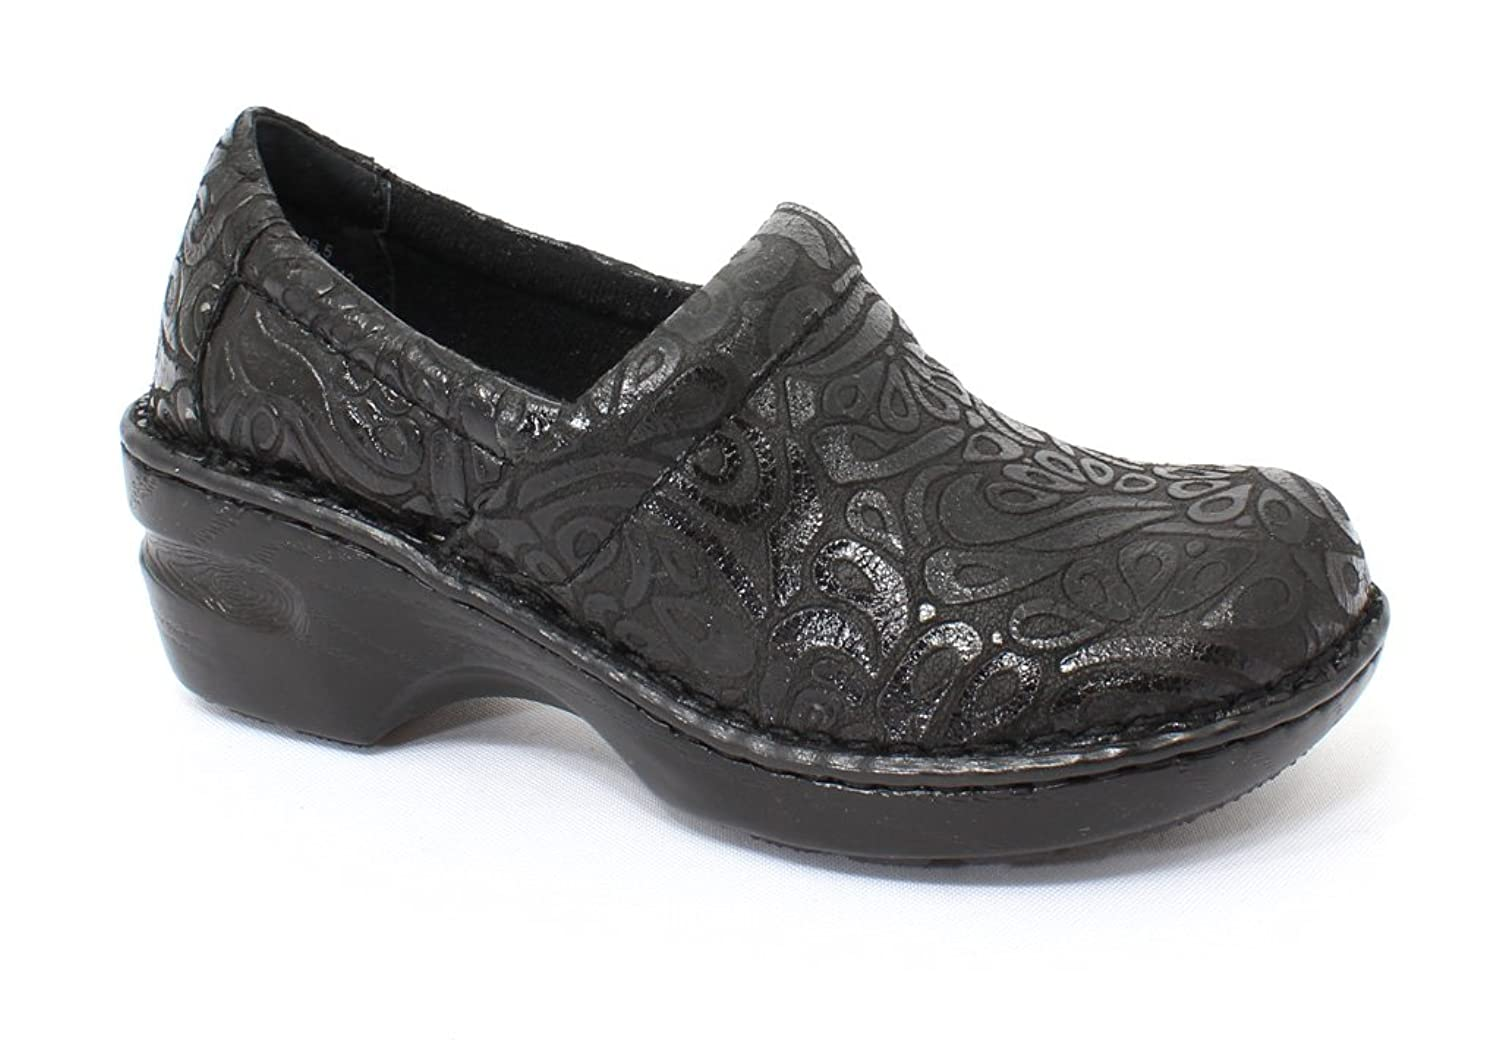 b.o.c Women's Peggy Black Tooled Synthetic 8.5 C/D US on sale